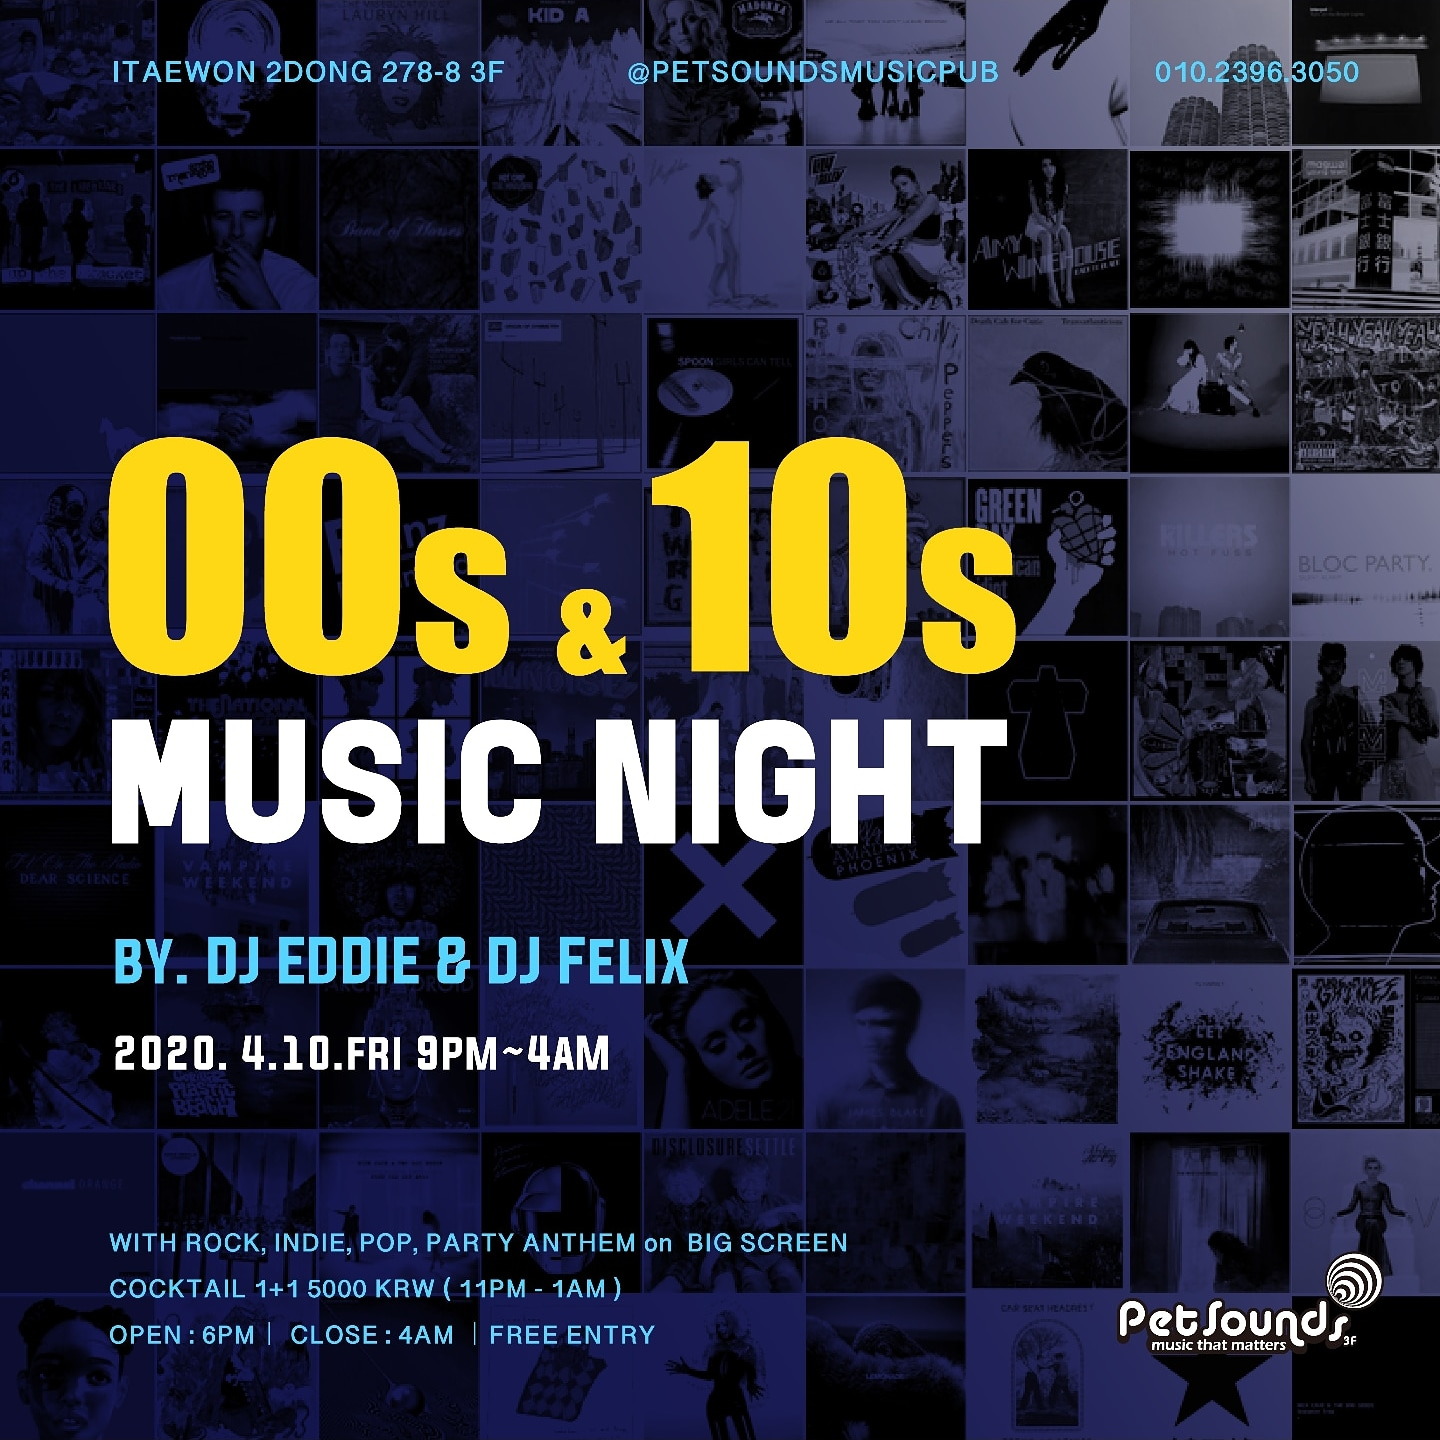 00's and 10's Night @ Pet sounds